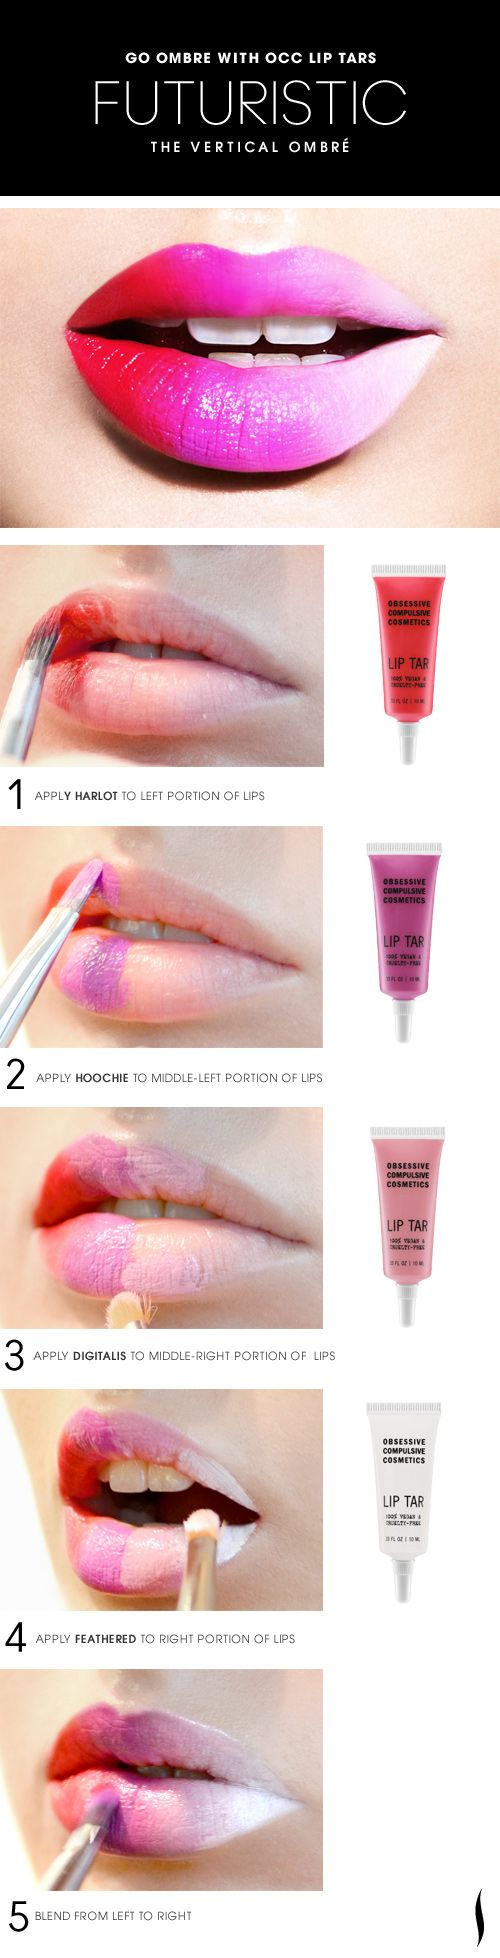 The Vertical Ombre Lip HOW TO. #OCC #Sephora #ombre #makeup || Find & buy more makeup from Sephora + 10% cash back http://www.studentrate.com/all/get-all-student-deals/Sephora-Student-Discounts--/0  #makeup #beauty #style